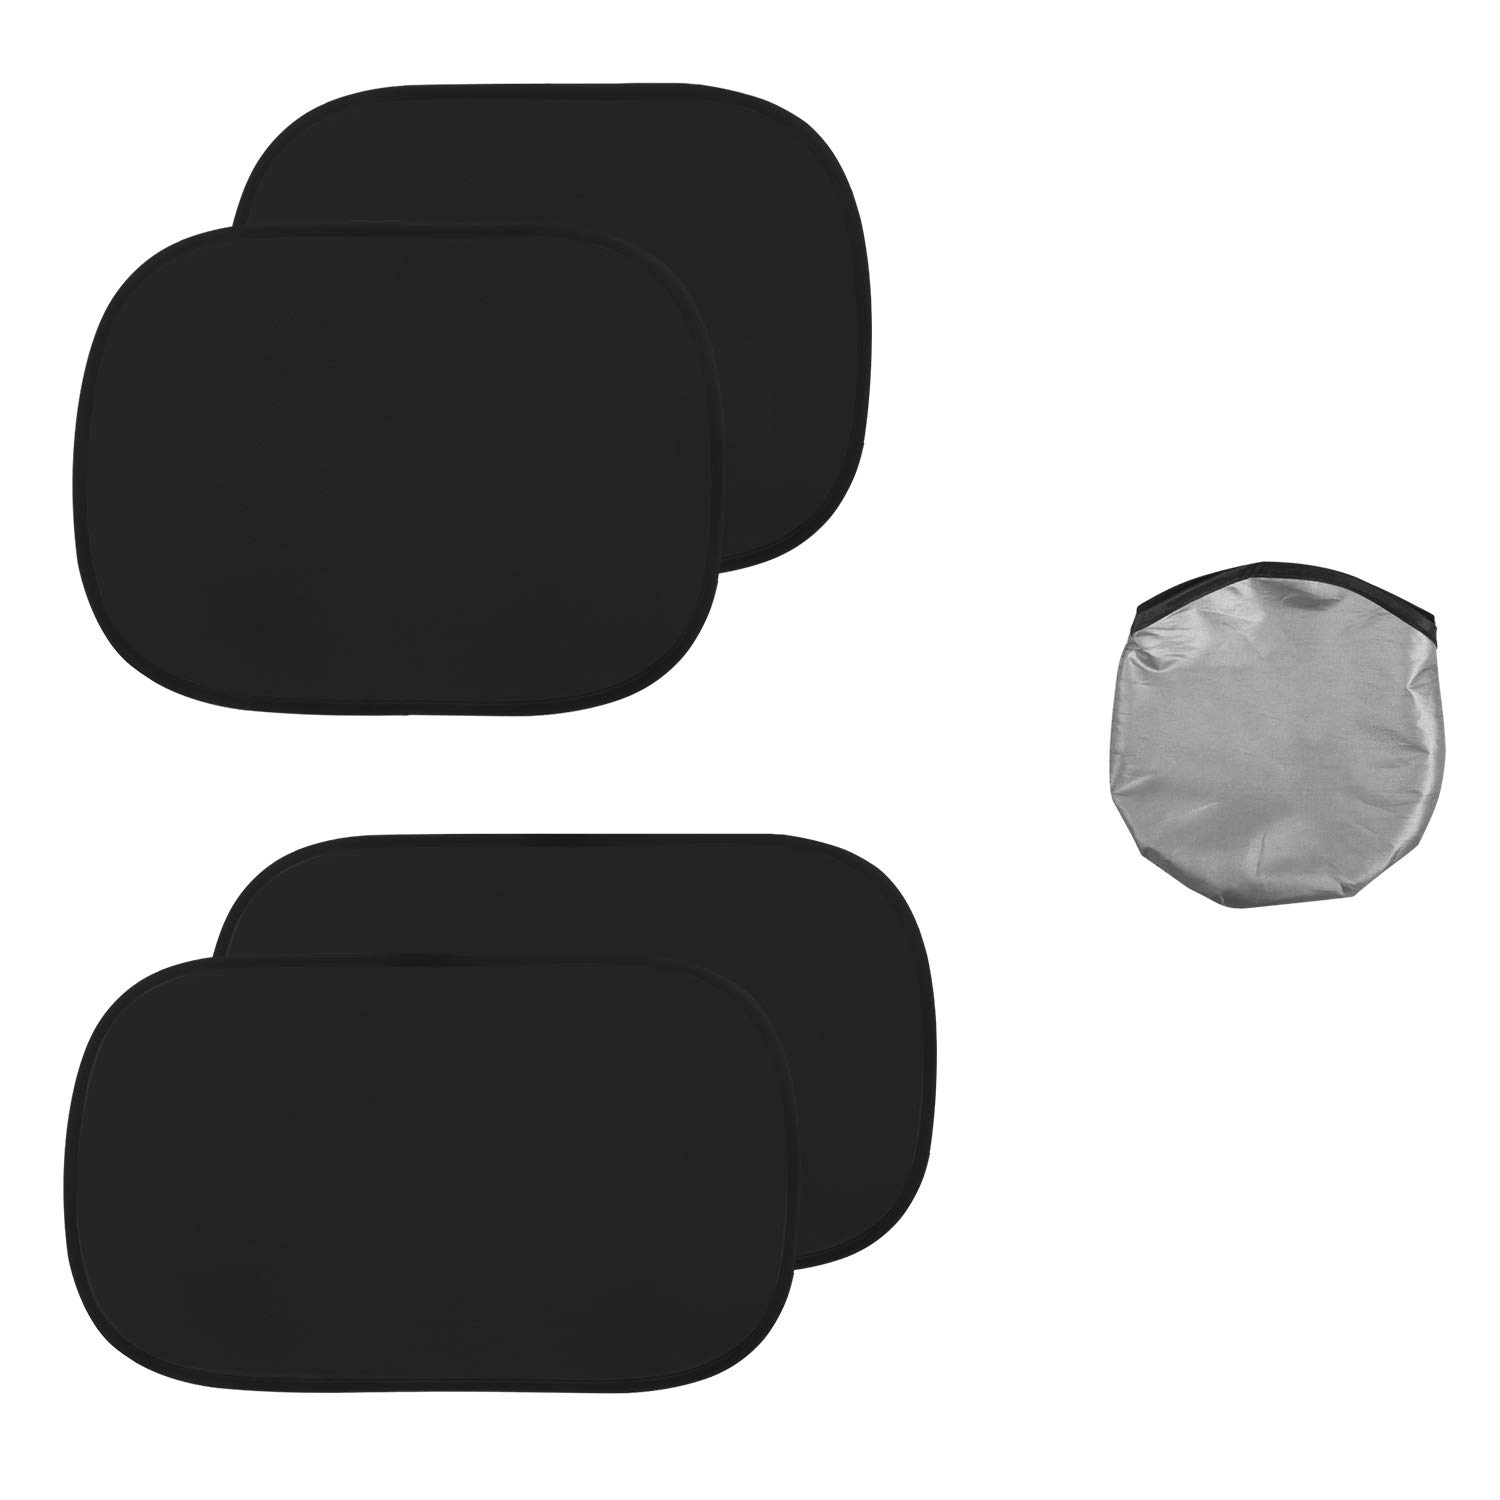 Car Side Window Sun Shade for Baby,Side Window Sunshades Protect for Kids Pets,Baby Sunshade for Car,80 GSM with 15s Film,Auto Sun Shades Blocking Sun Car Sun Shade 17x15,Car Window Shades 2Pack